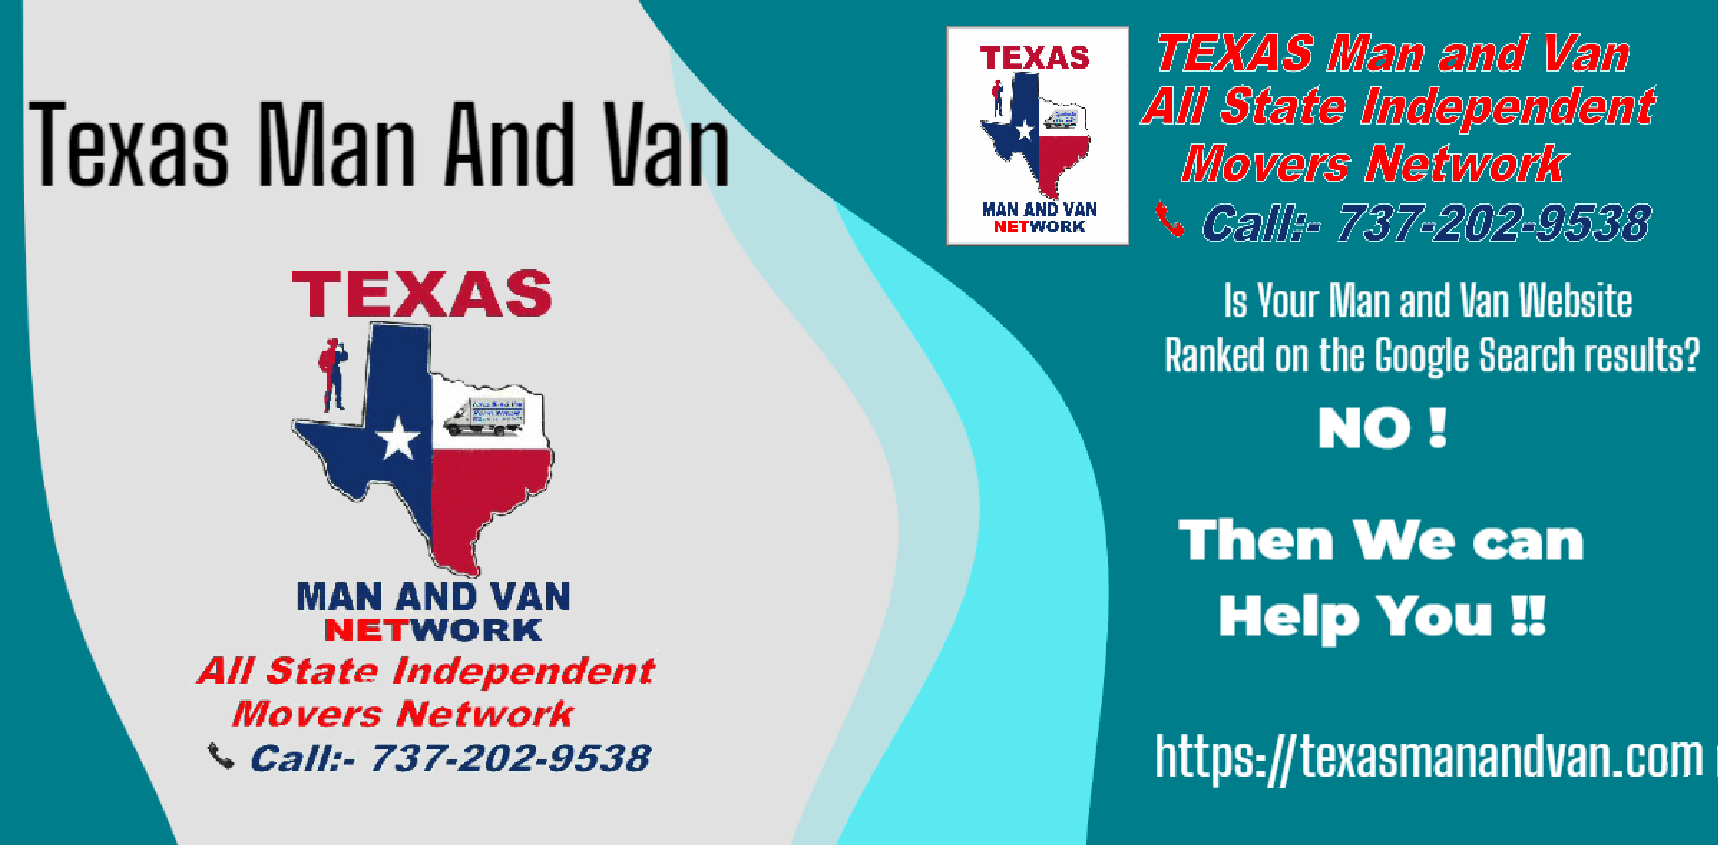 Looking for a reliable Texas Movers Mover Company in Texas